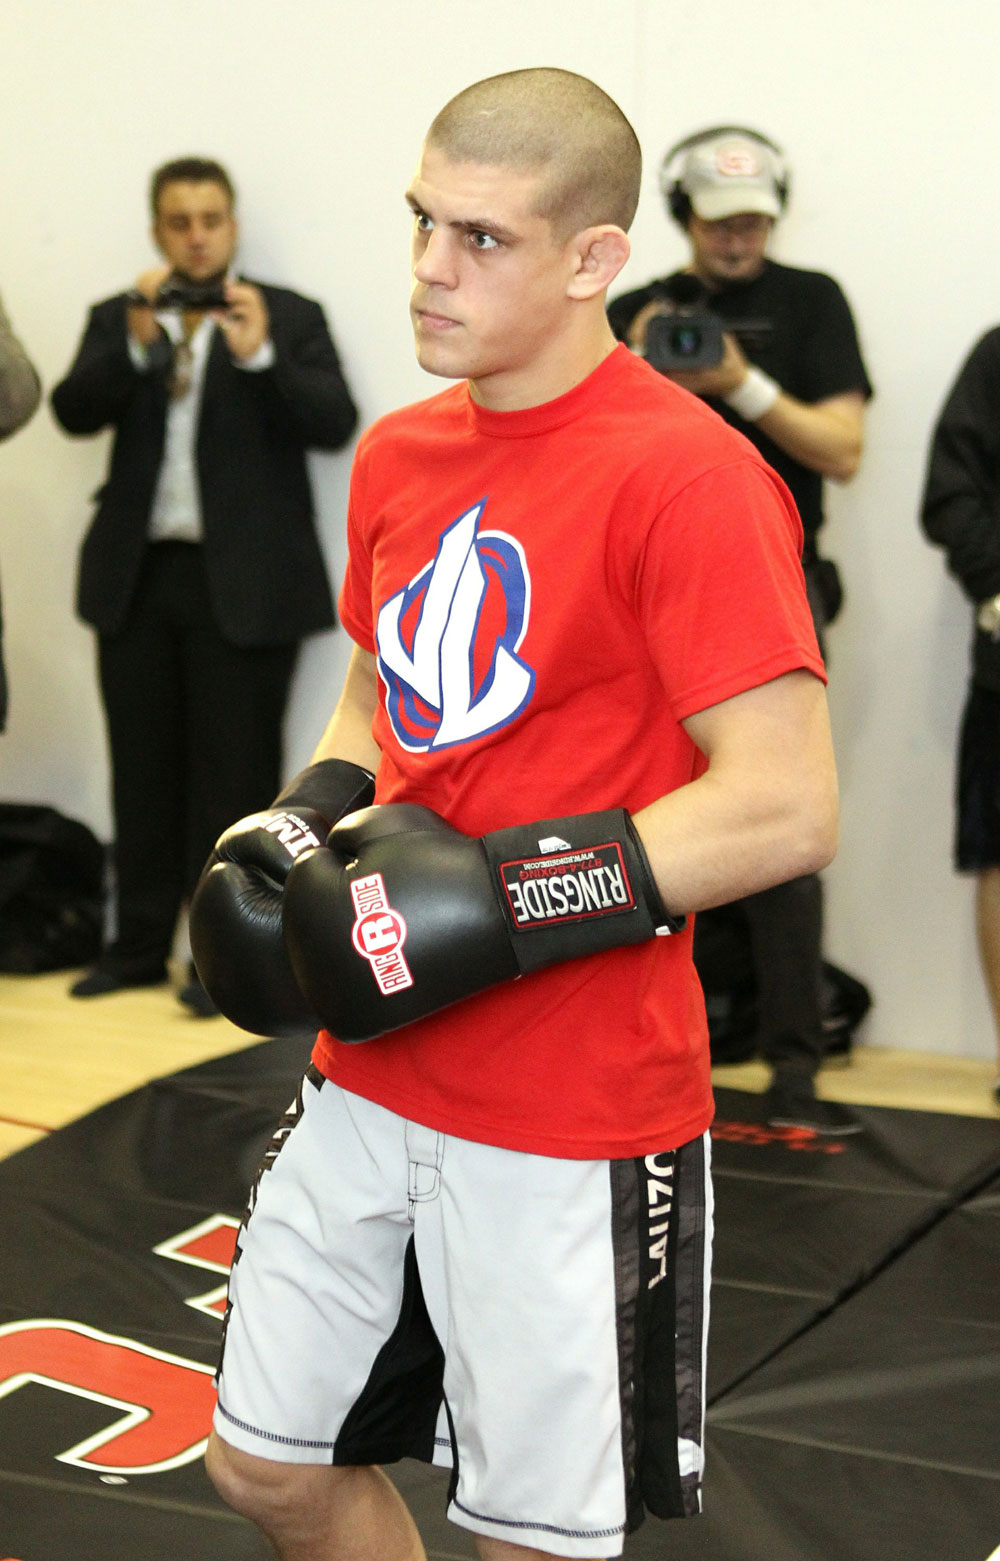 Joe Lauzon works out for the media at the UFC 123 open workouts at the Detroit Athletic Club on November 18, 2010 in Detroit, Michigan.  (Photo by Josh Hedges/Zuffa LLC/Zuffa LLC via Getty Images)